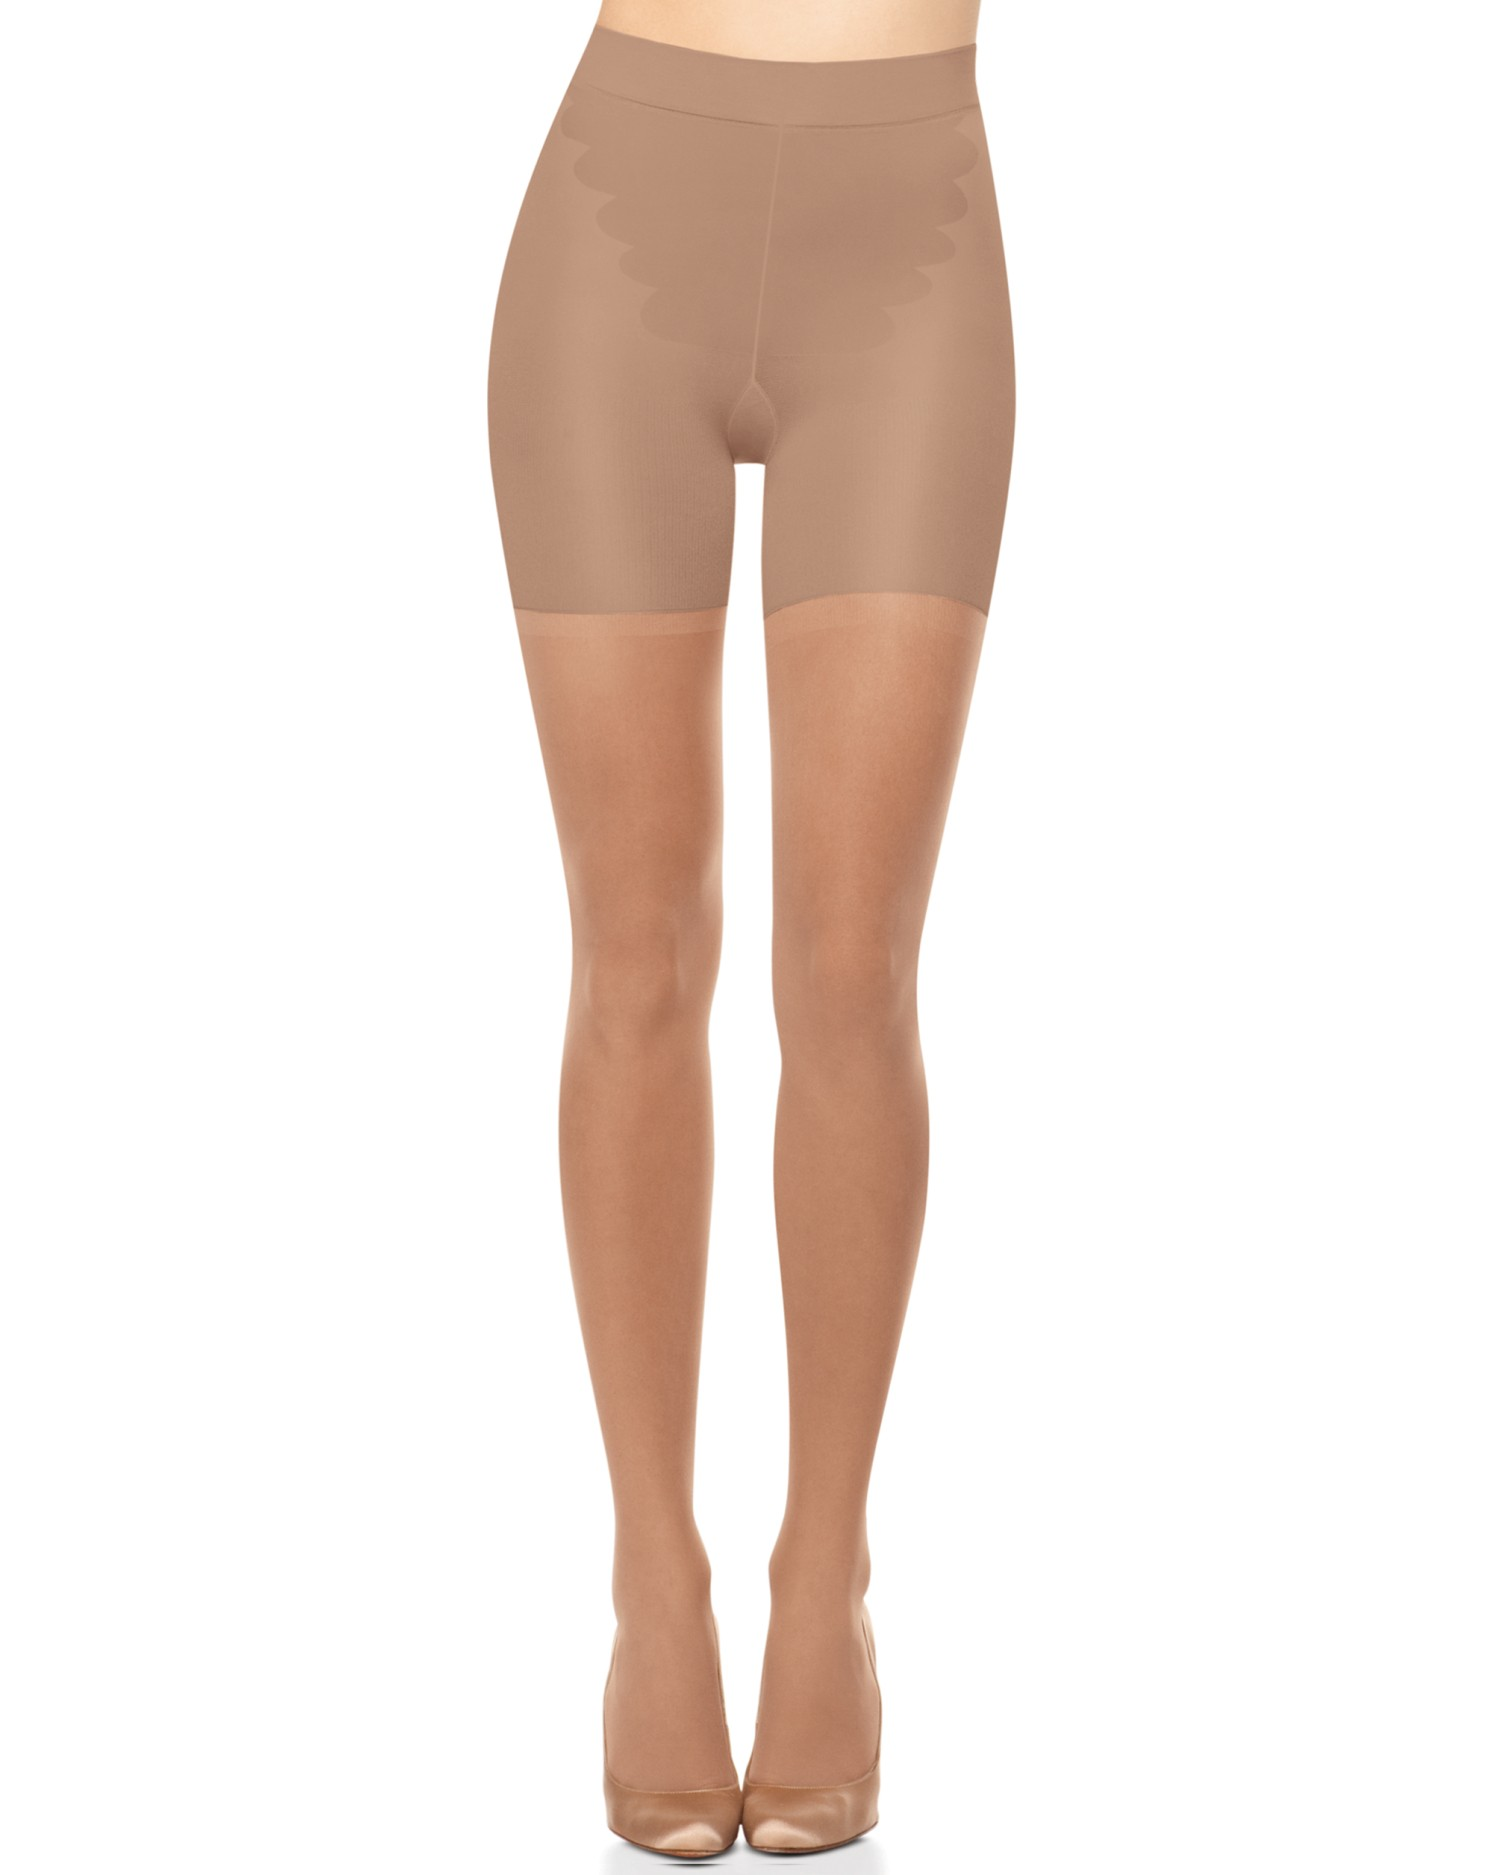 Spanx  All The Way Leg Support Pantyhose Style 101 Choose Size//Color